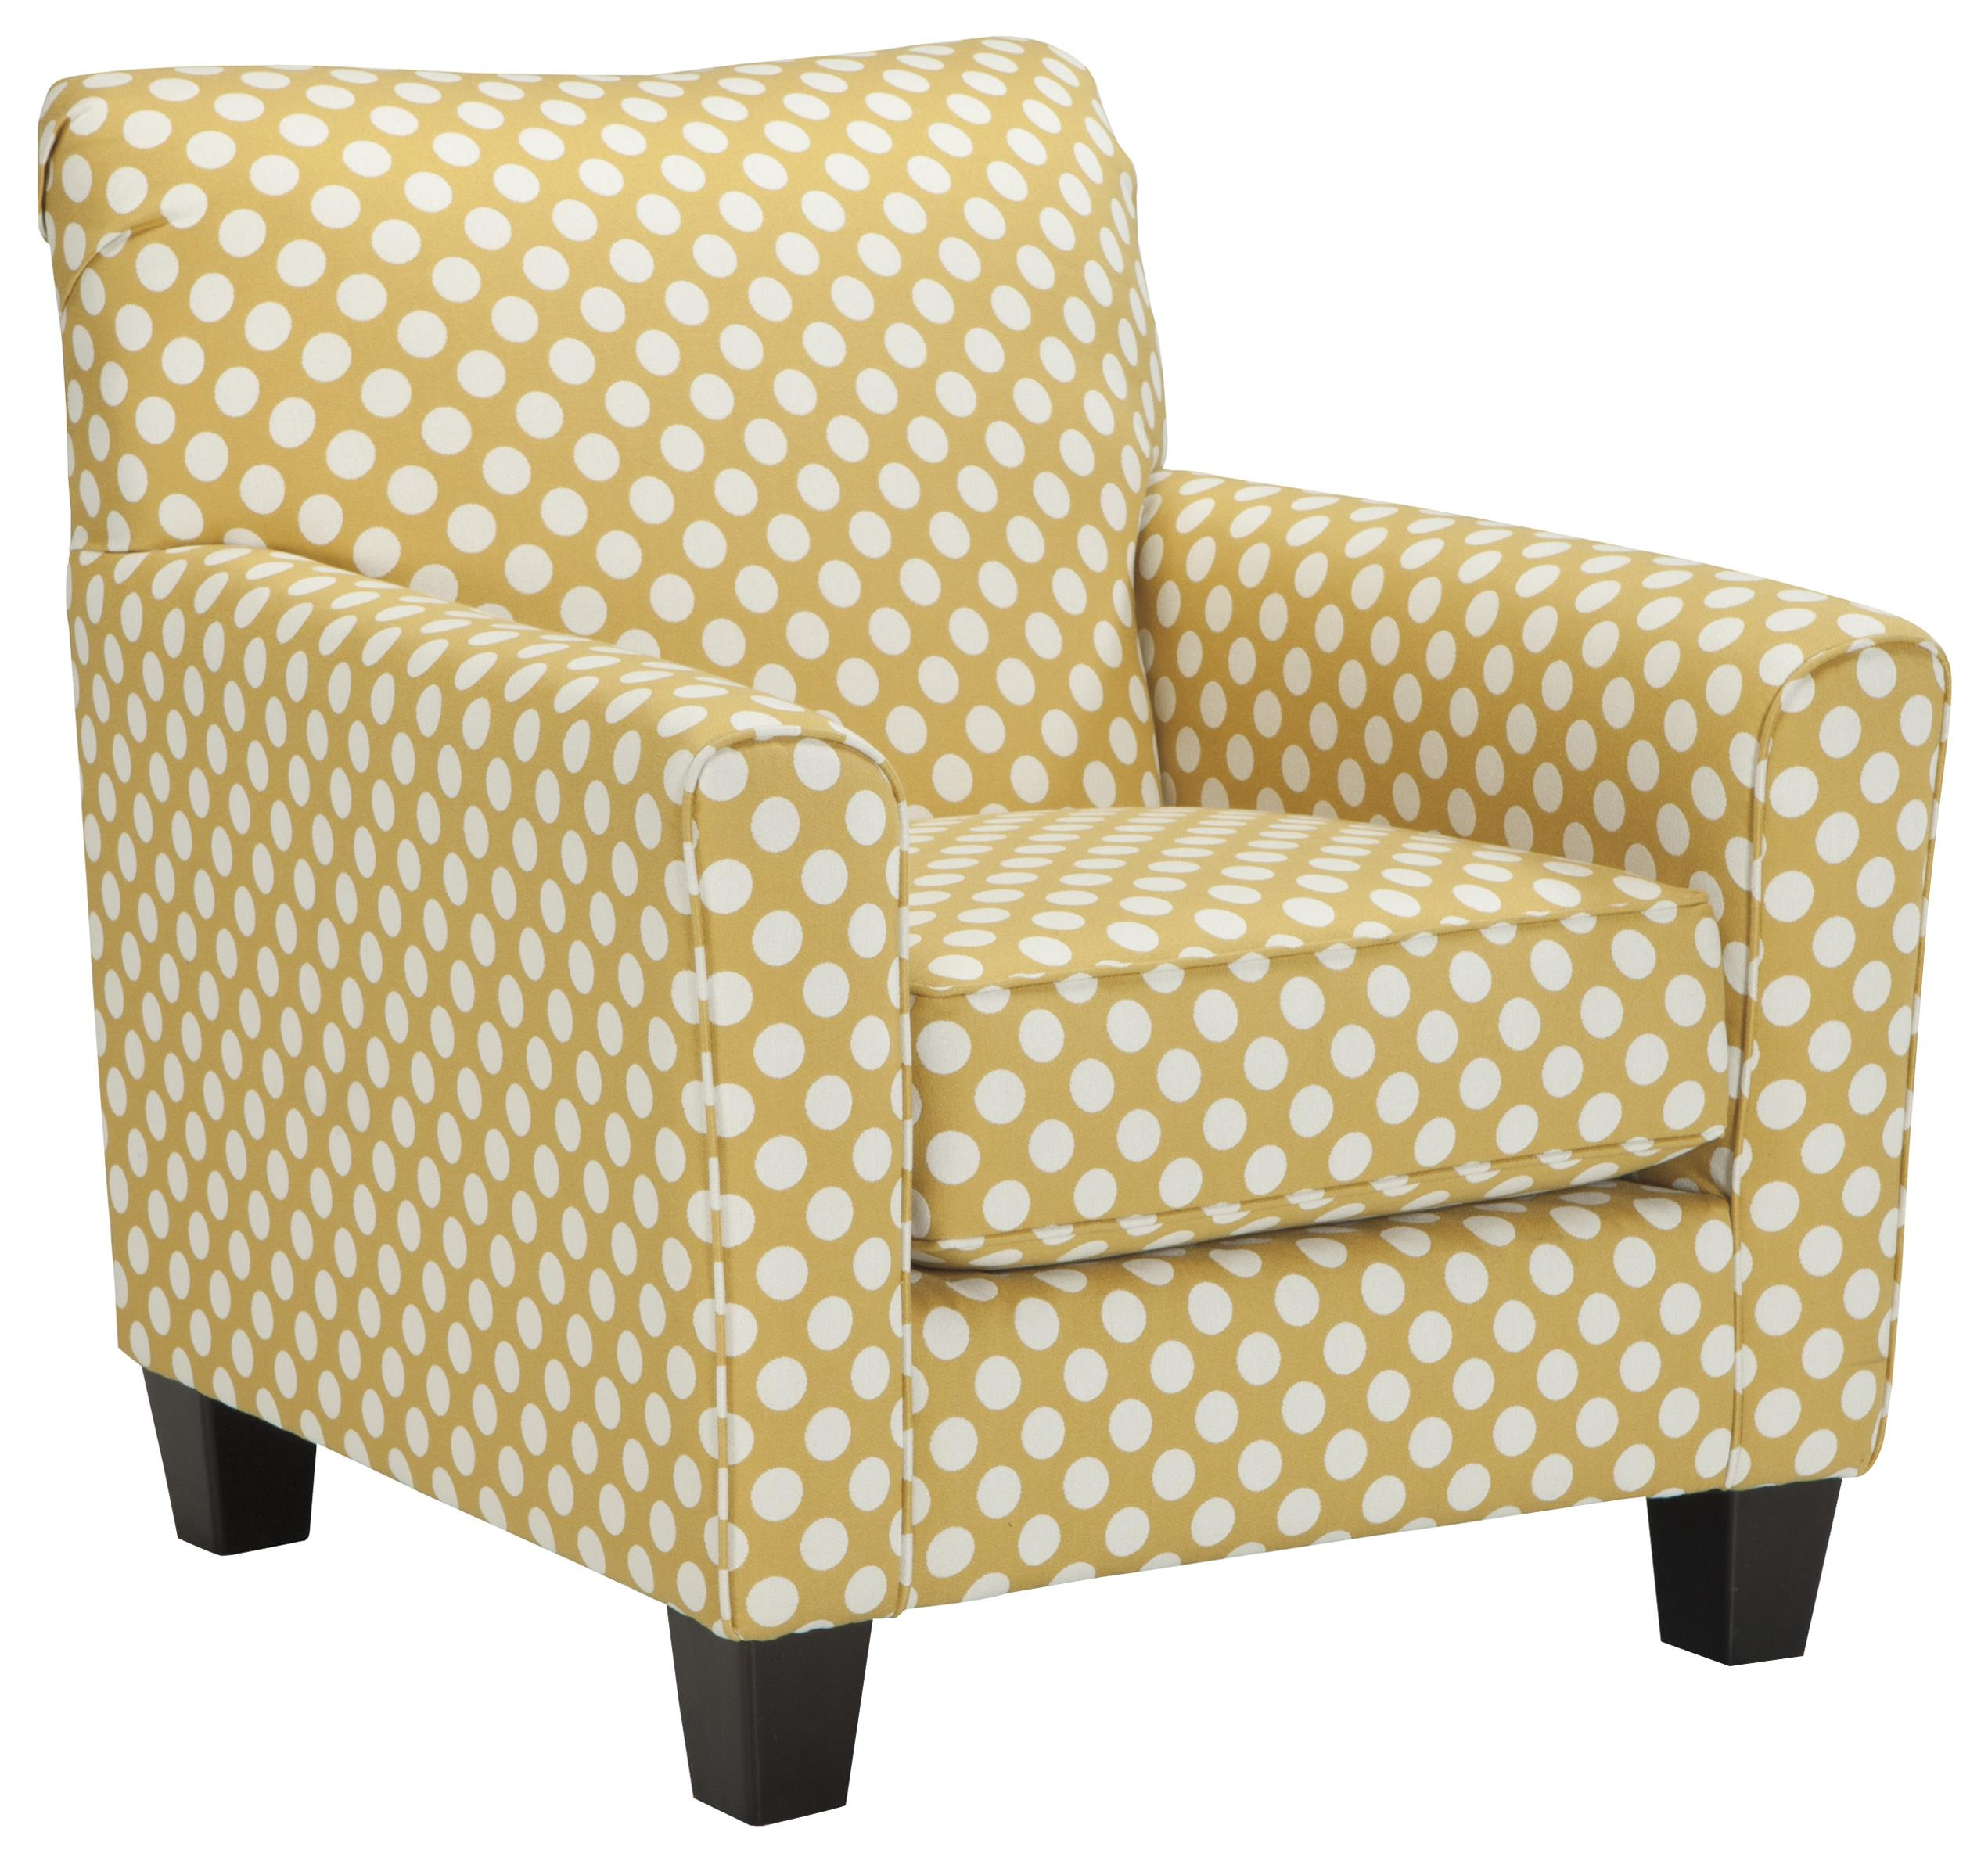 Benchcraft Brindon Accent Chair in Yellow Fabric with